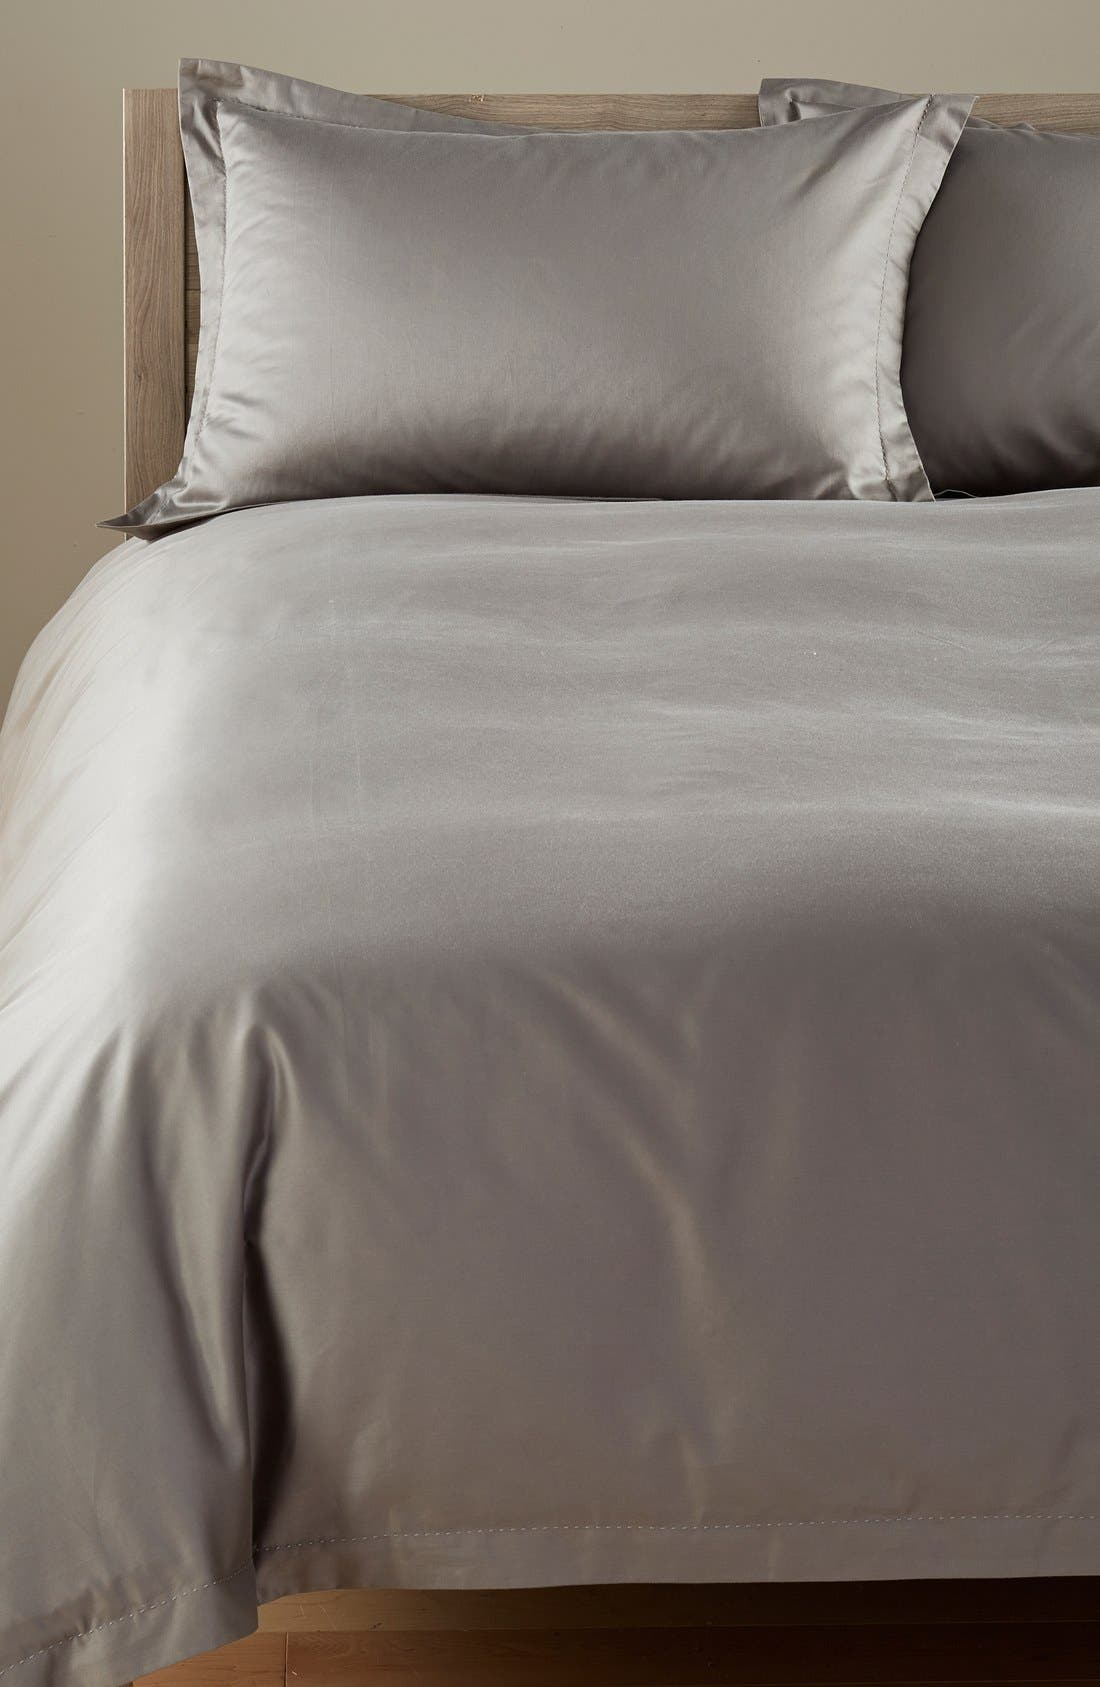 NORDSTROM AT HOME 'Dorin' 400 Thread Count Cotton